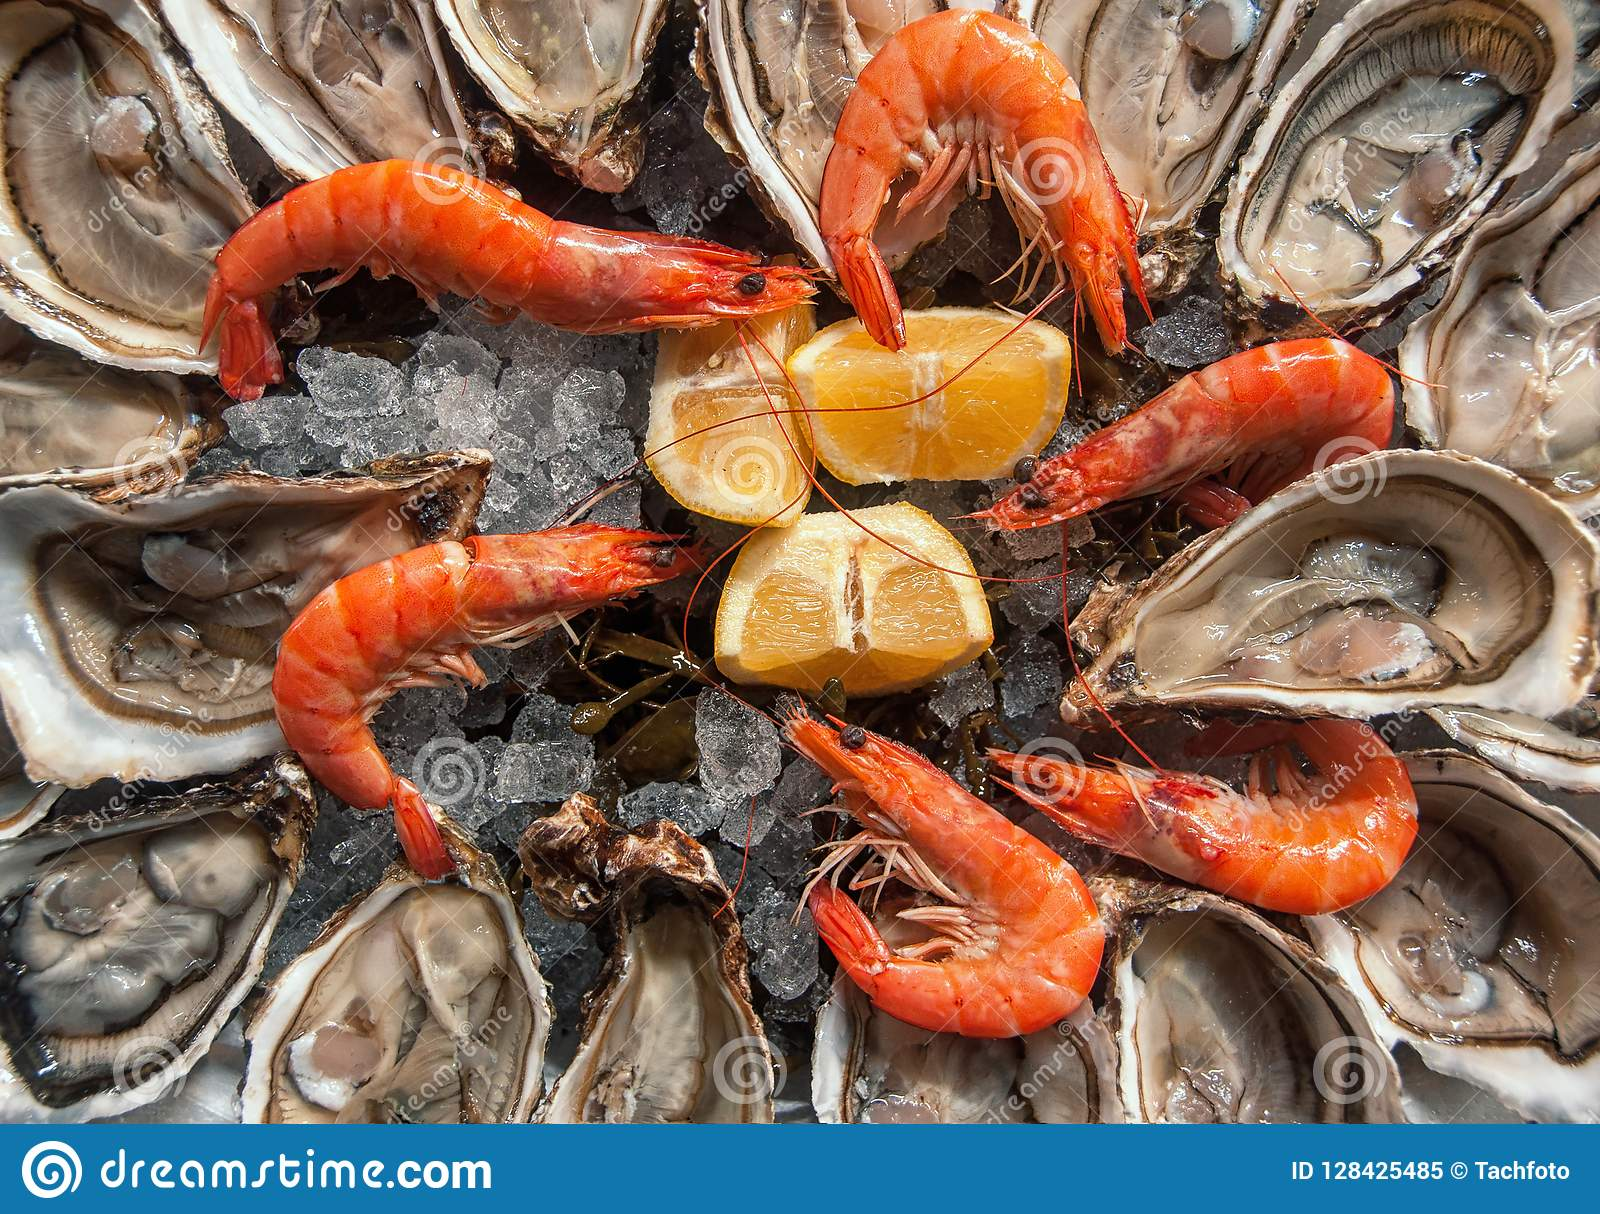 Top view oysters background with Open Oysters with shrimps and l